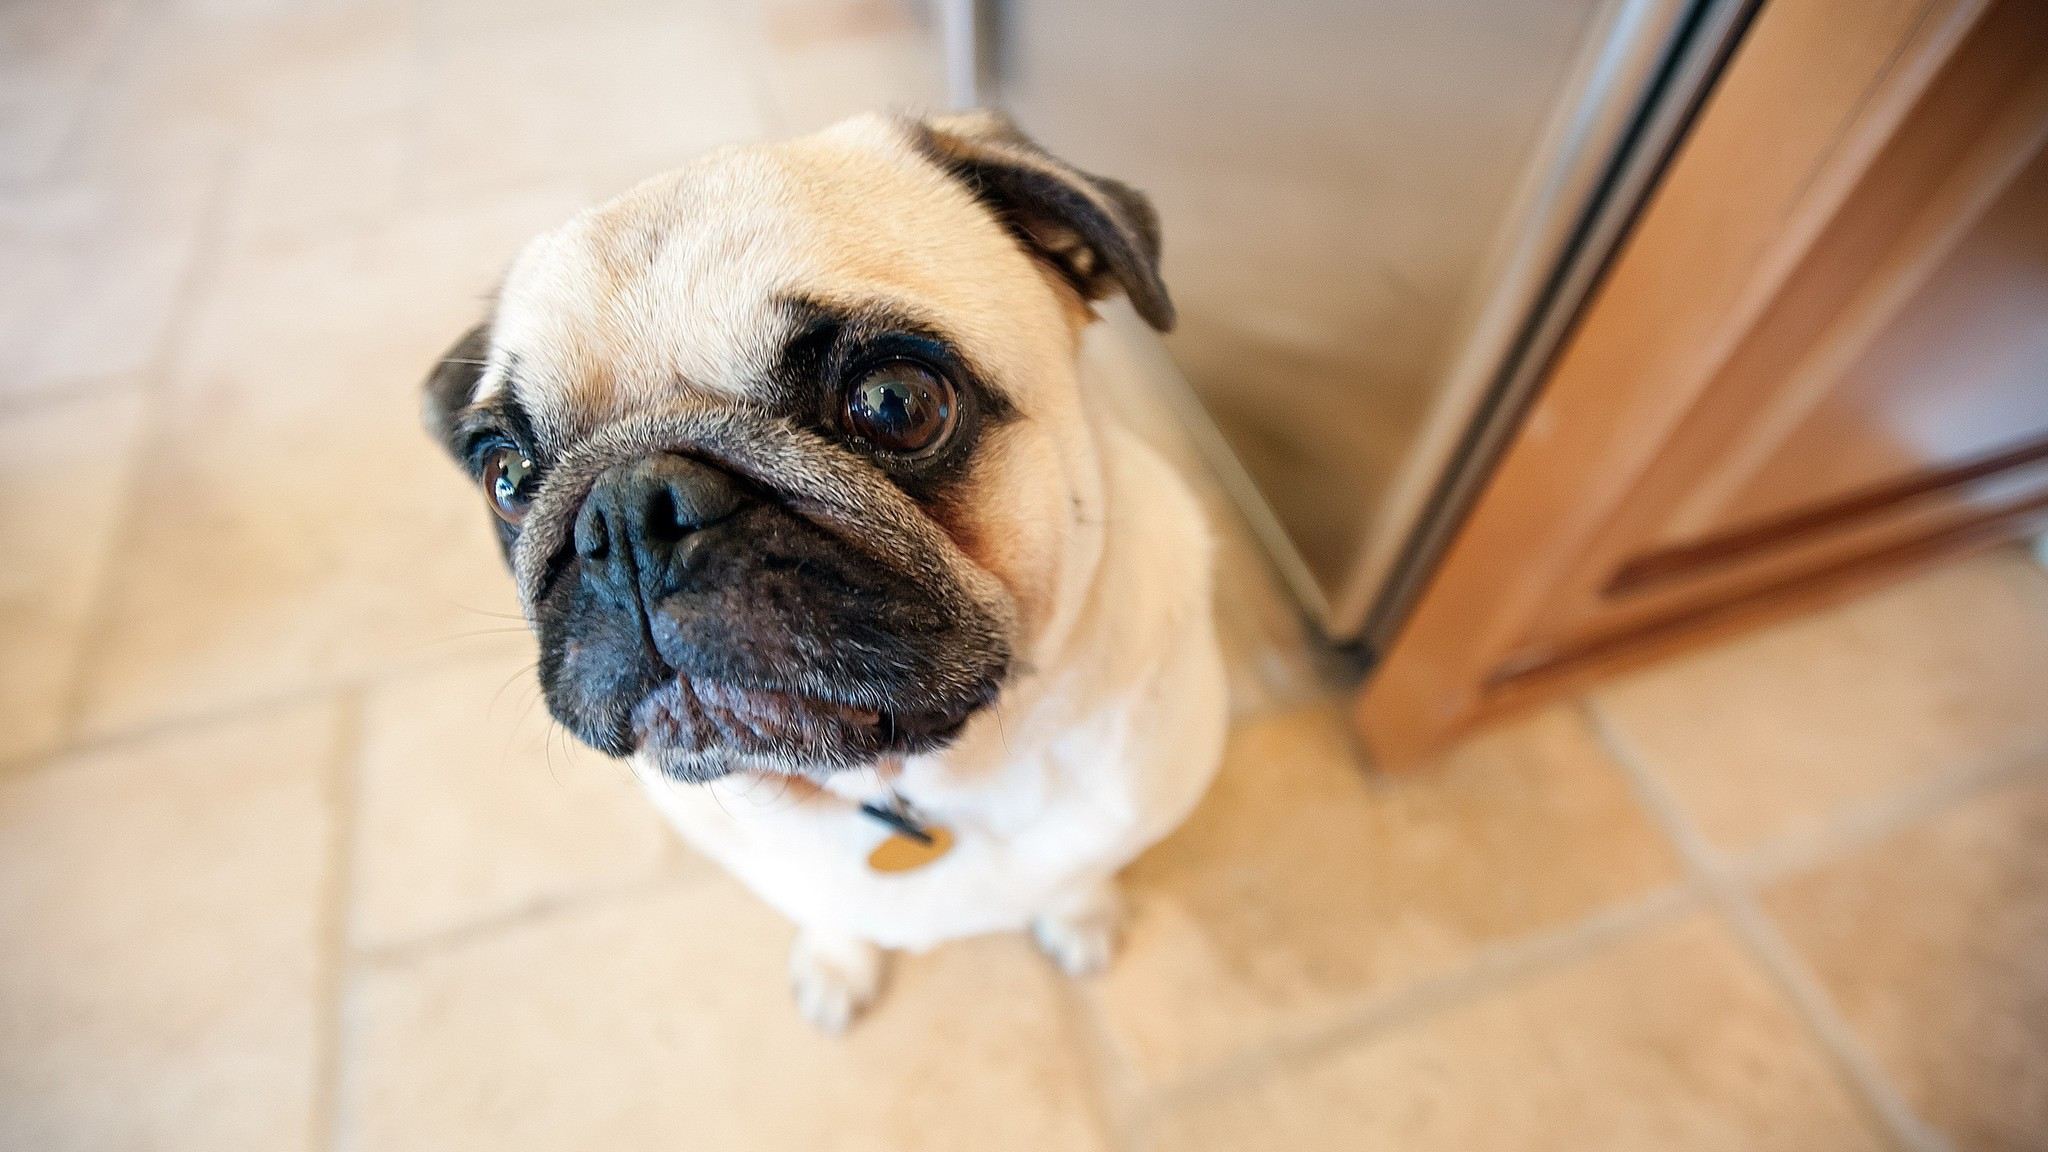 All Wallpapers Pug Dog Hd Wallpapers: Animals Dogs Pets Looking Up Pug Wallpaper